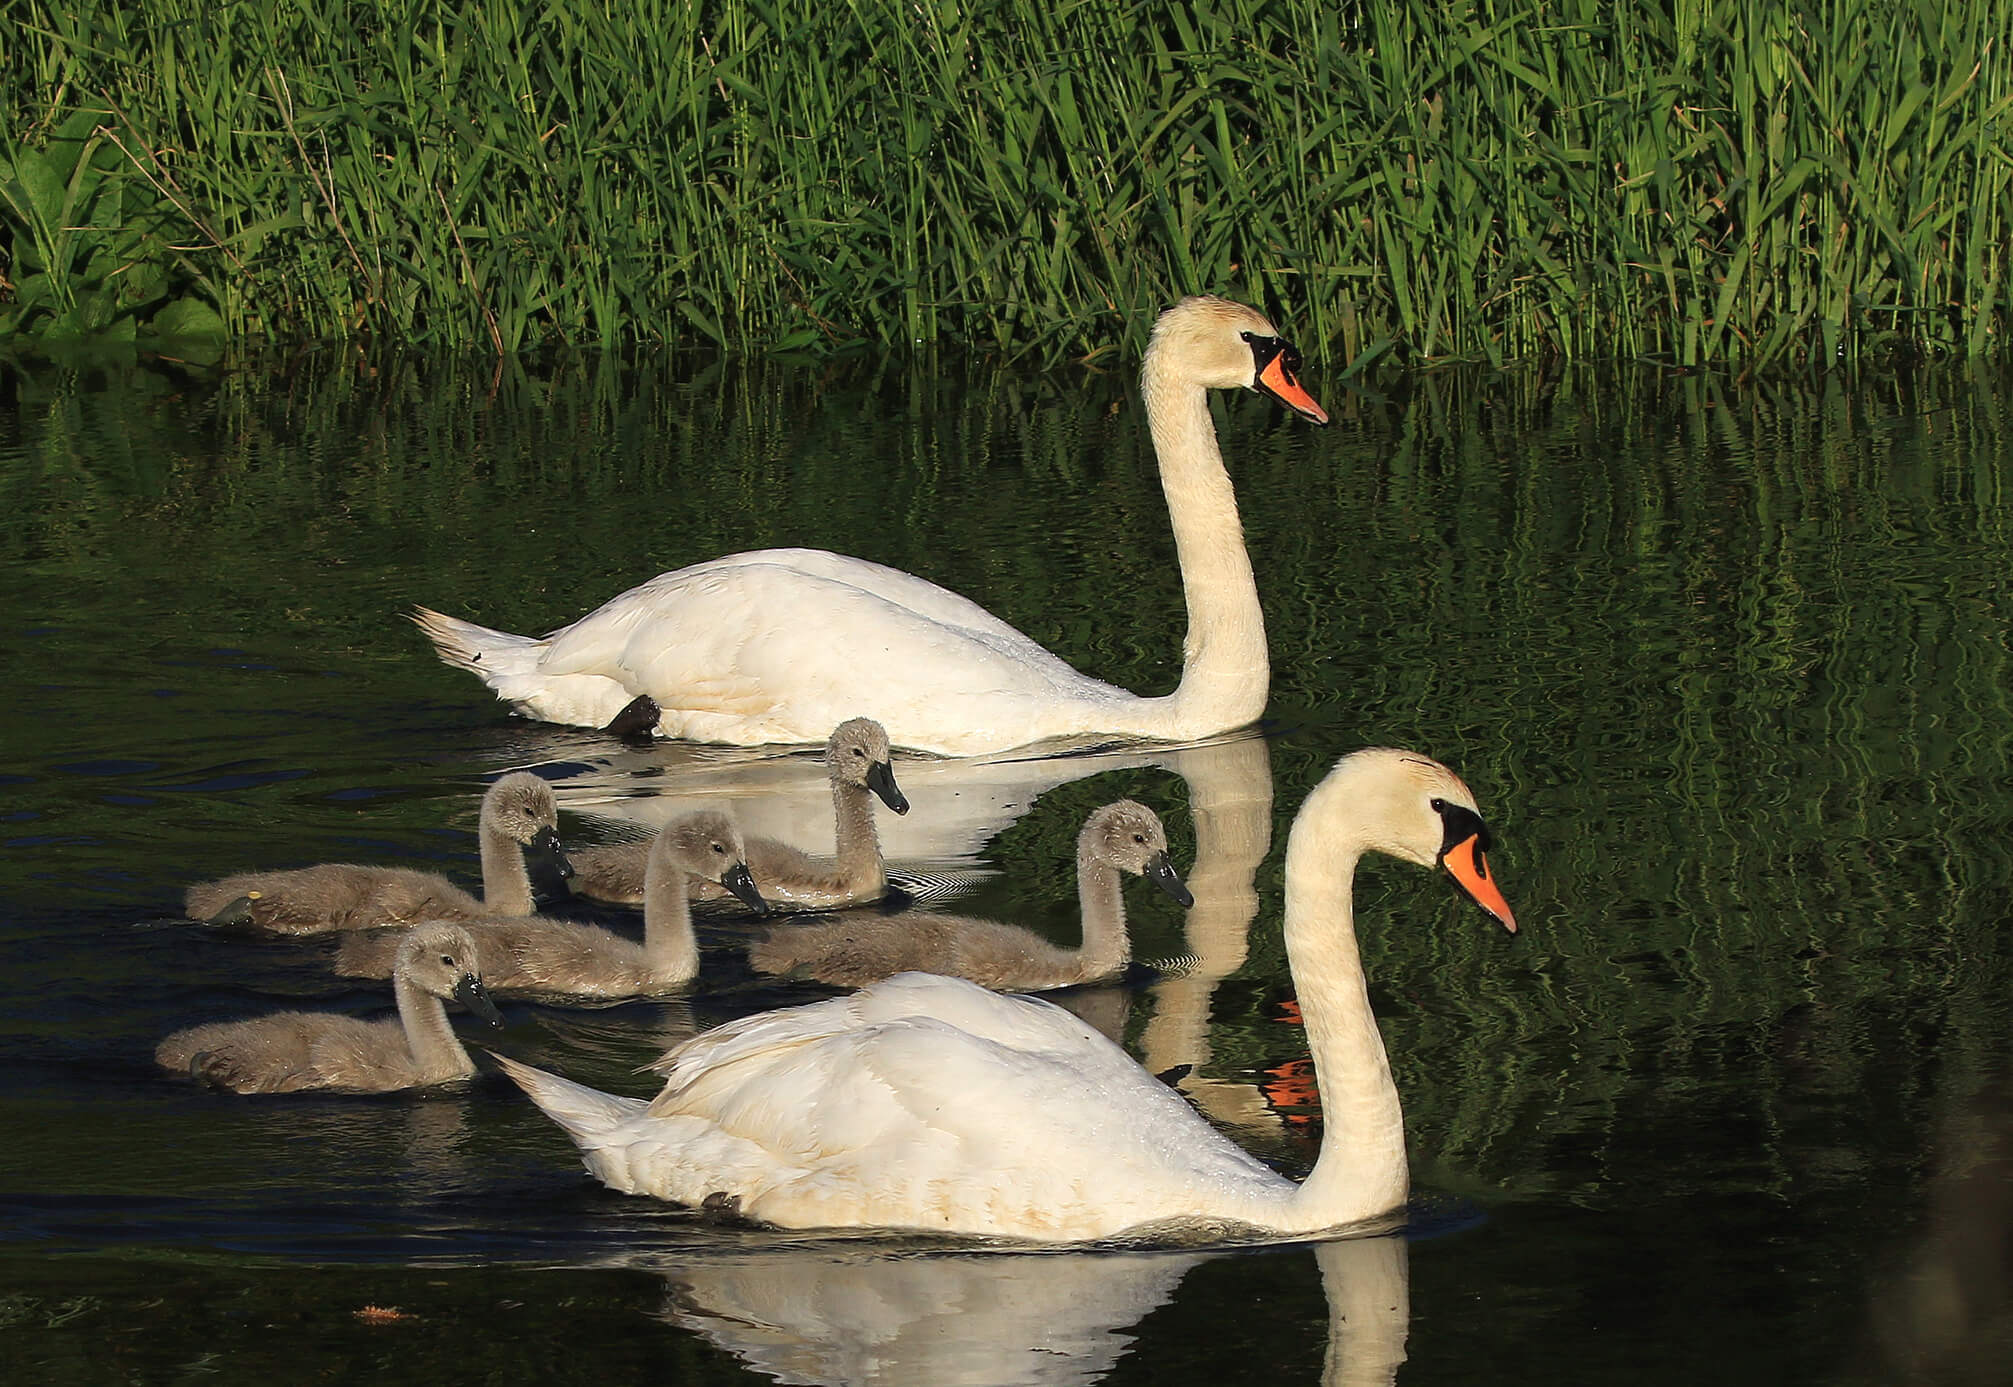 East Devon and River Otter: The White Bridge swans, near Budleigh Salterton, before the injury. Image: David R White